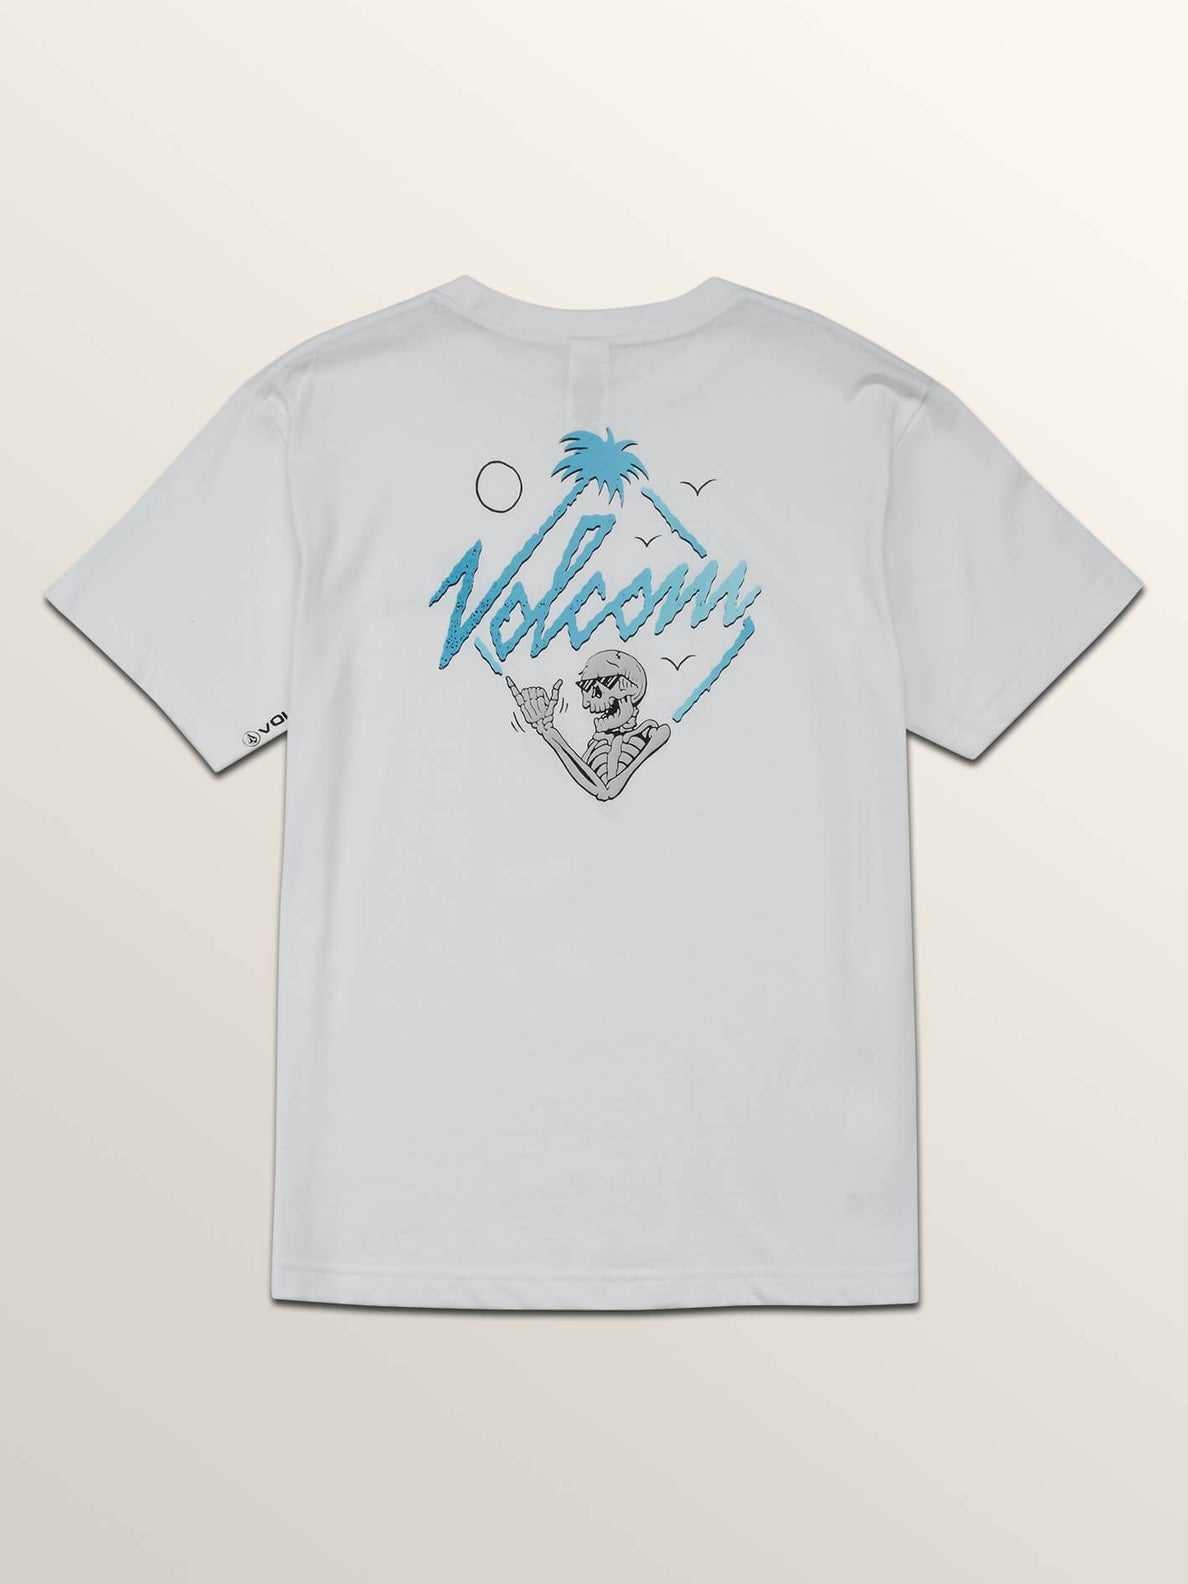 Big Boys Flexer Short Sleeve Tee In White, Back View